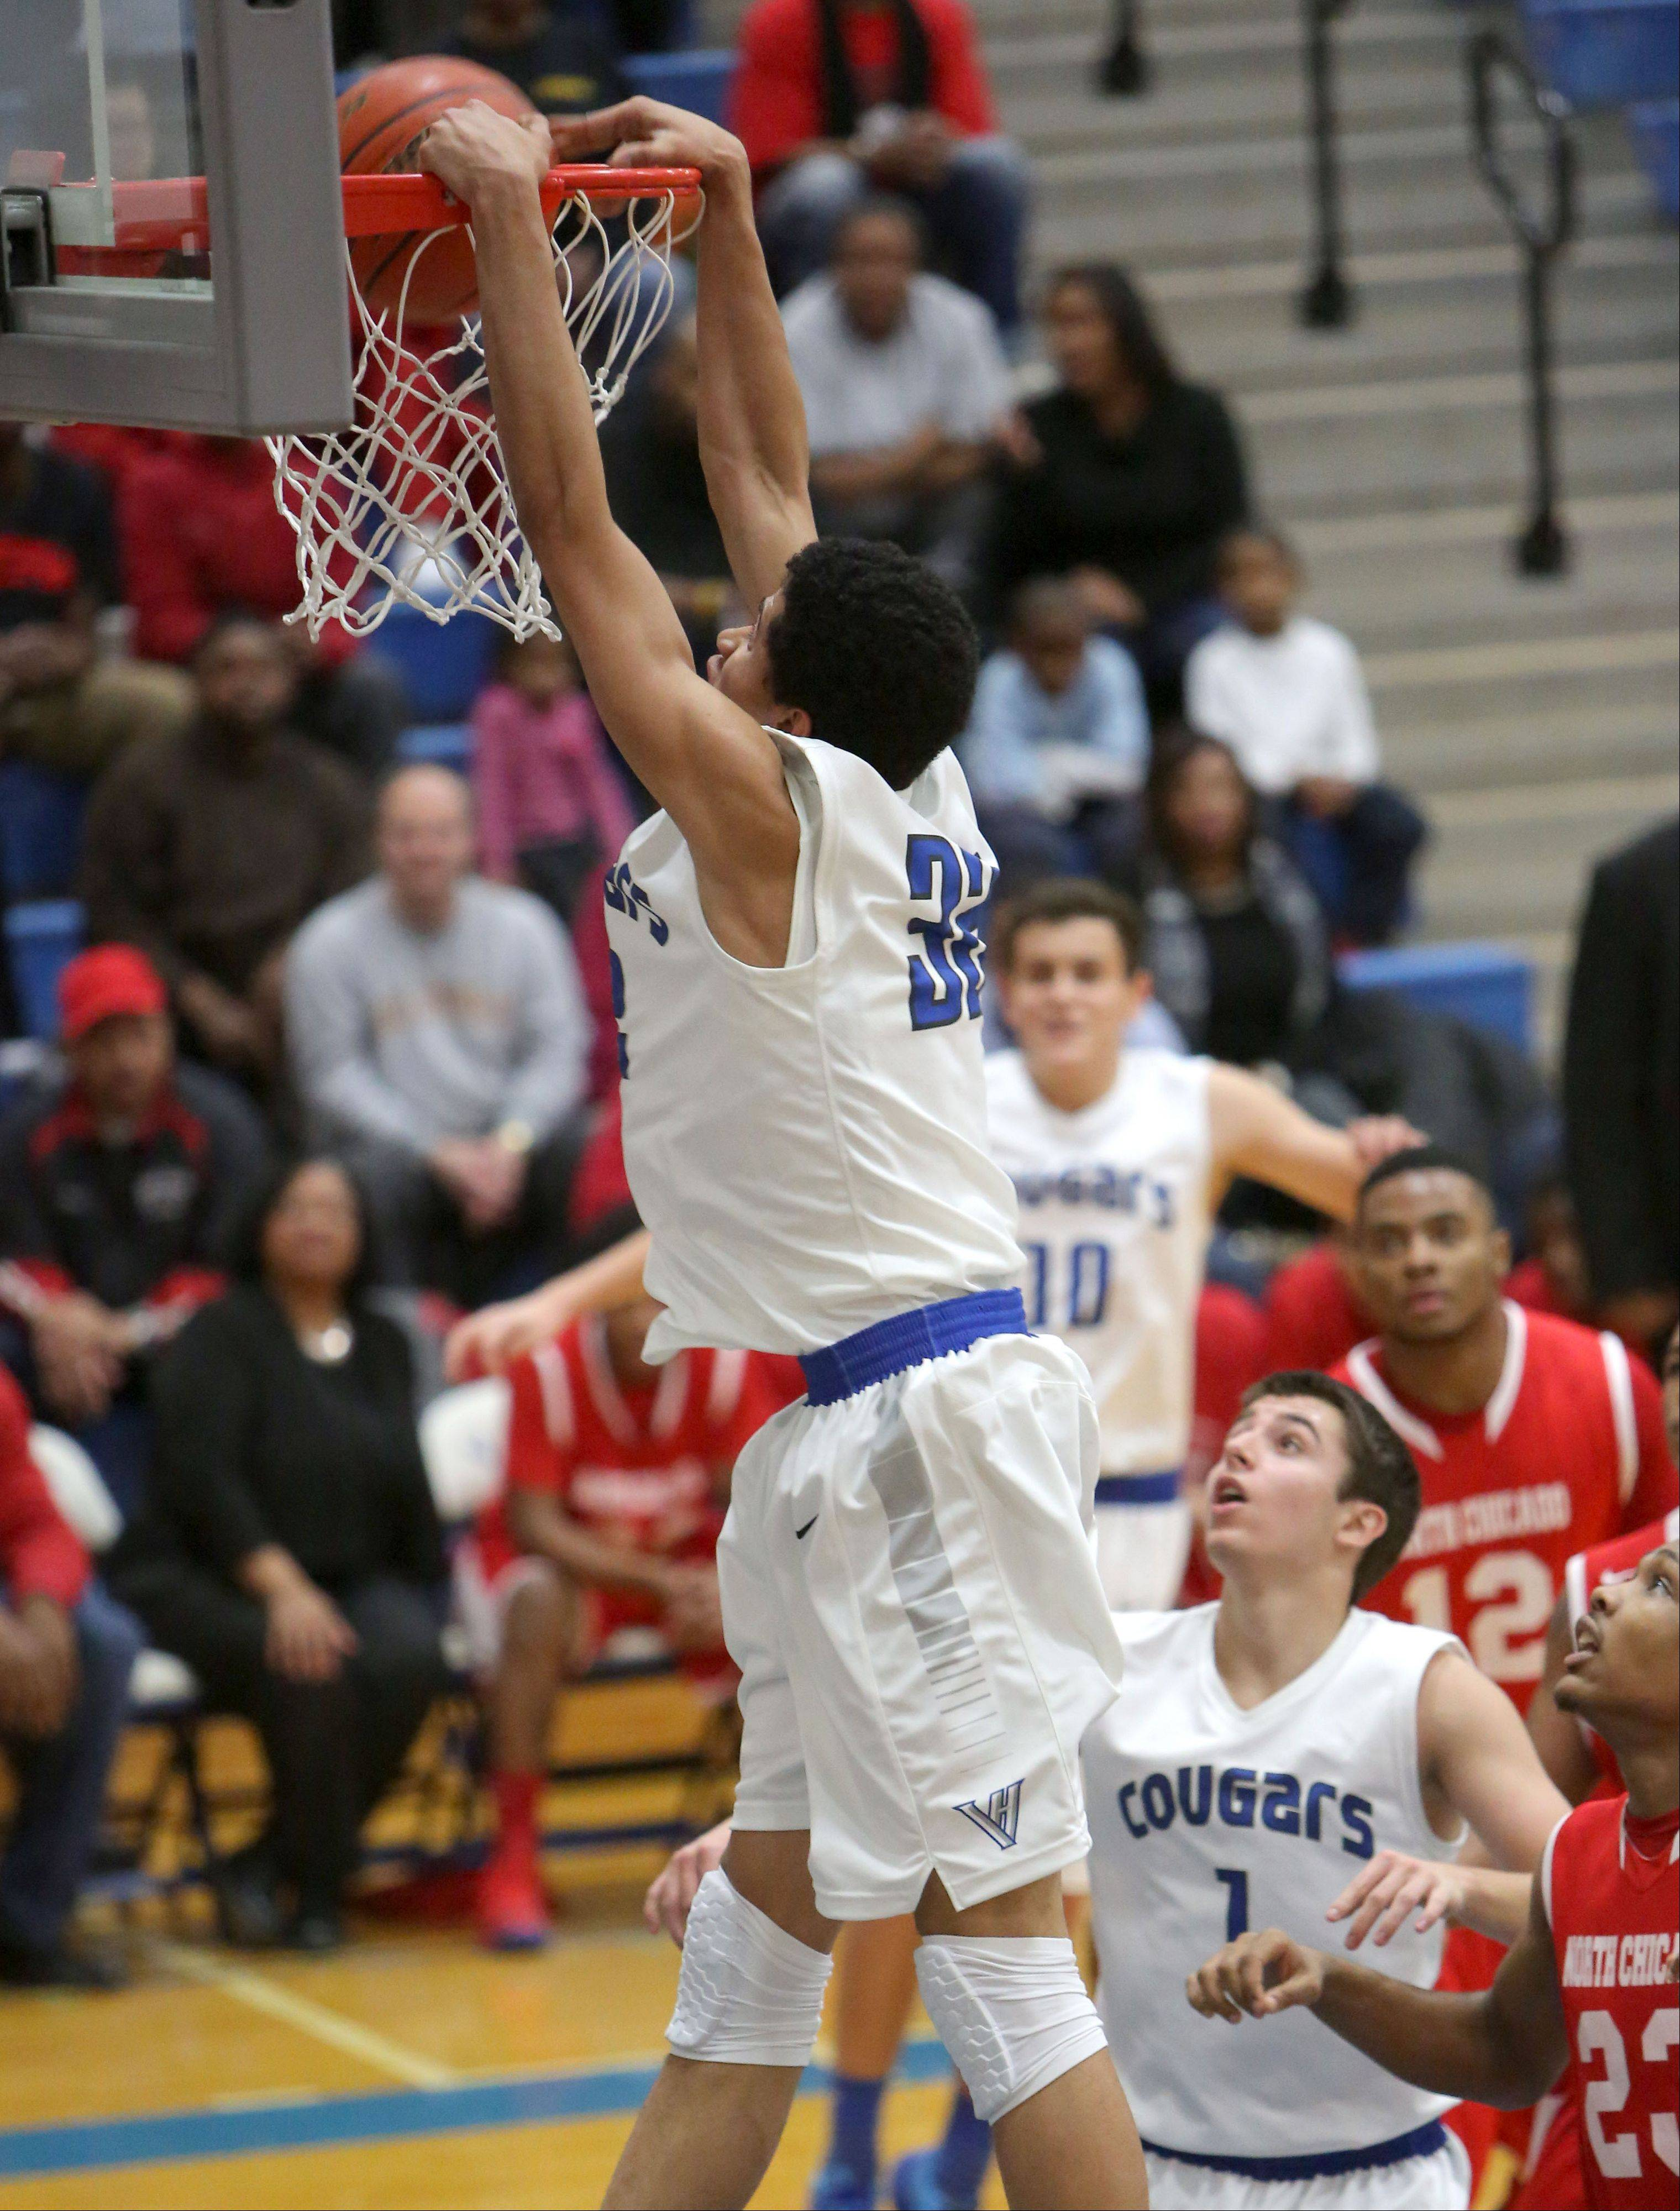 Vernon Hills' Lem Turner goes in for a slam dunk.